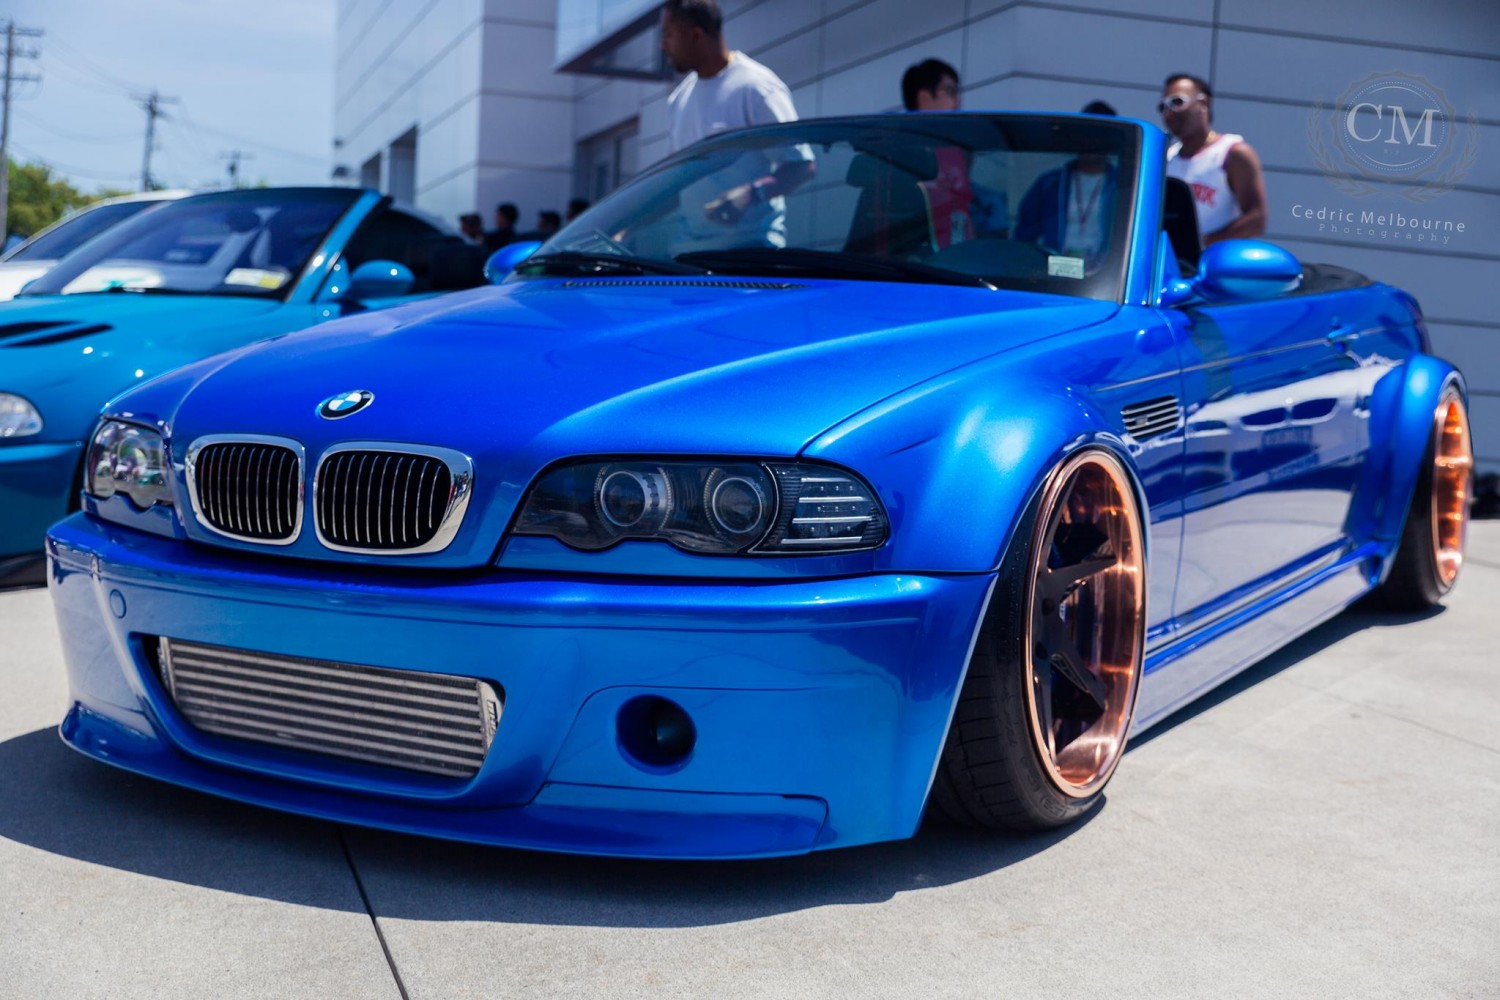 Sick Drop Top Bmw Stancenation Form Gt Function